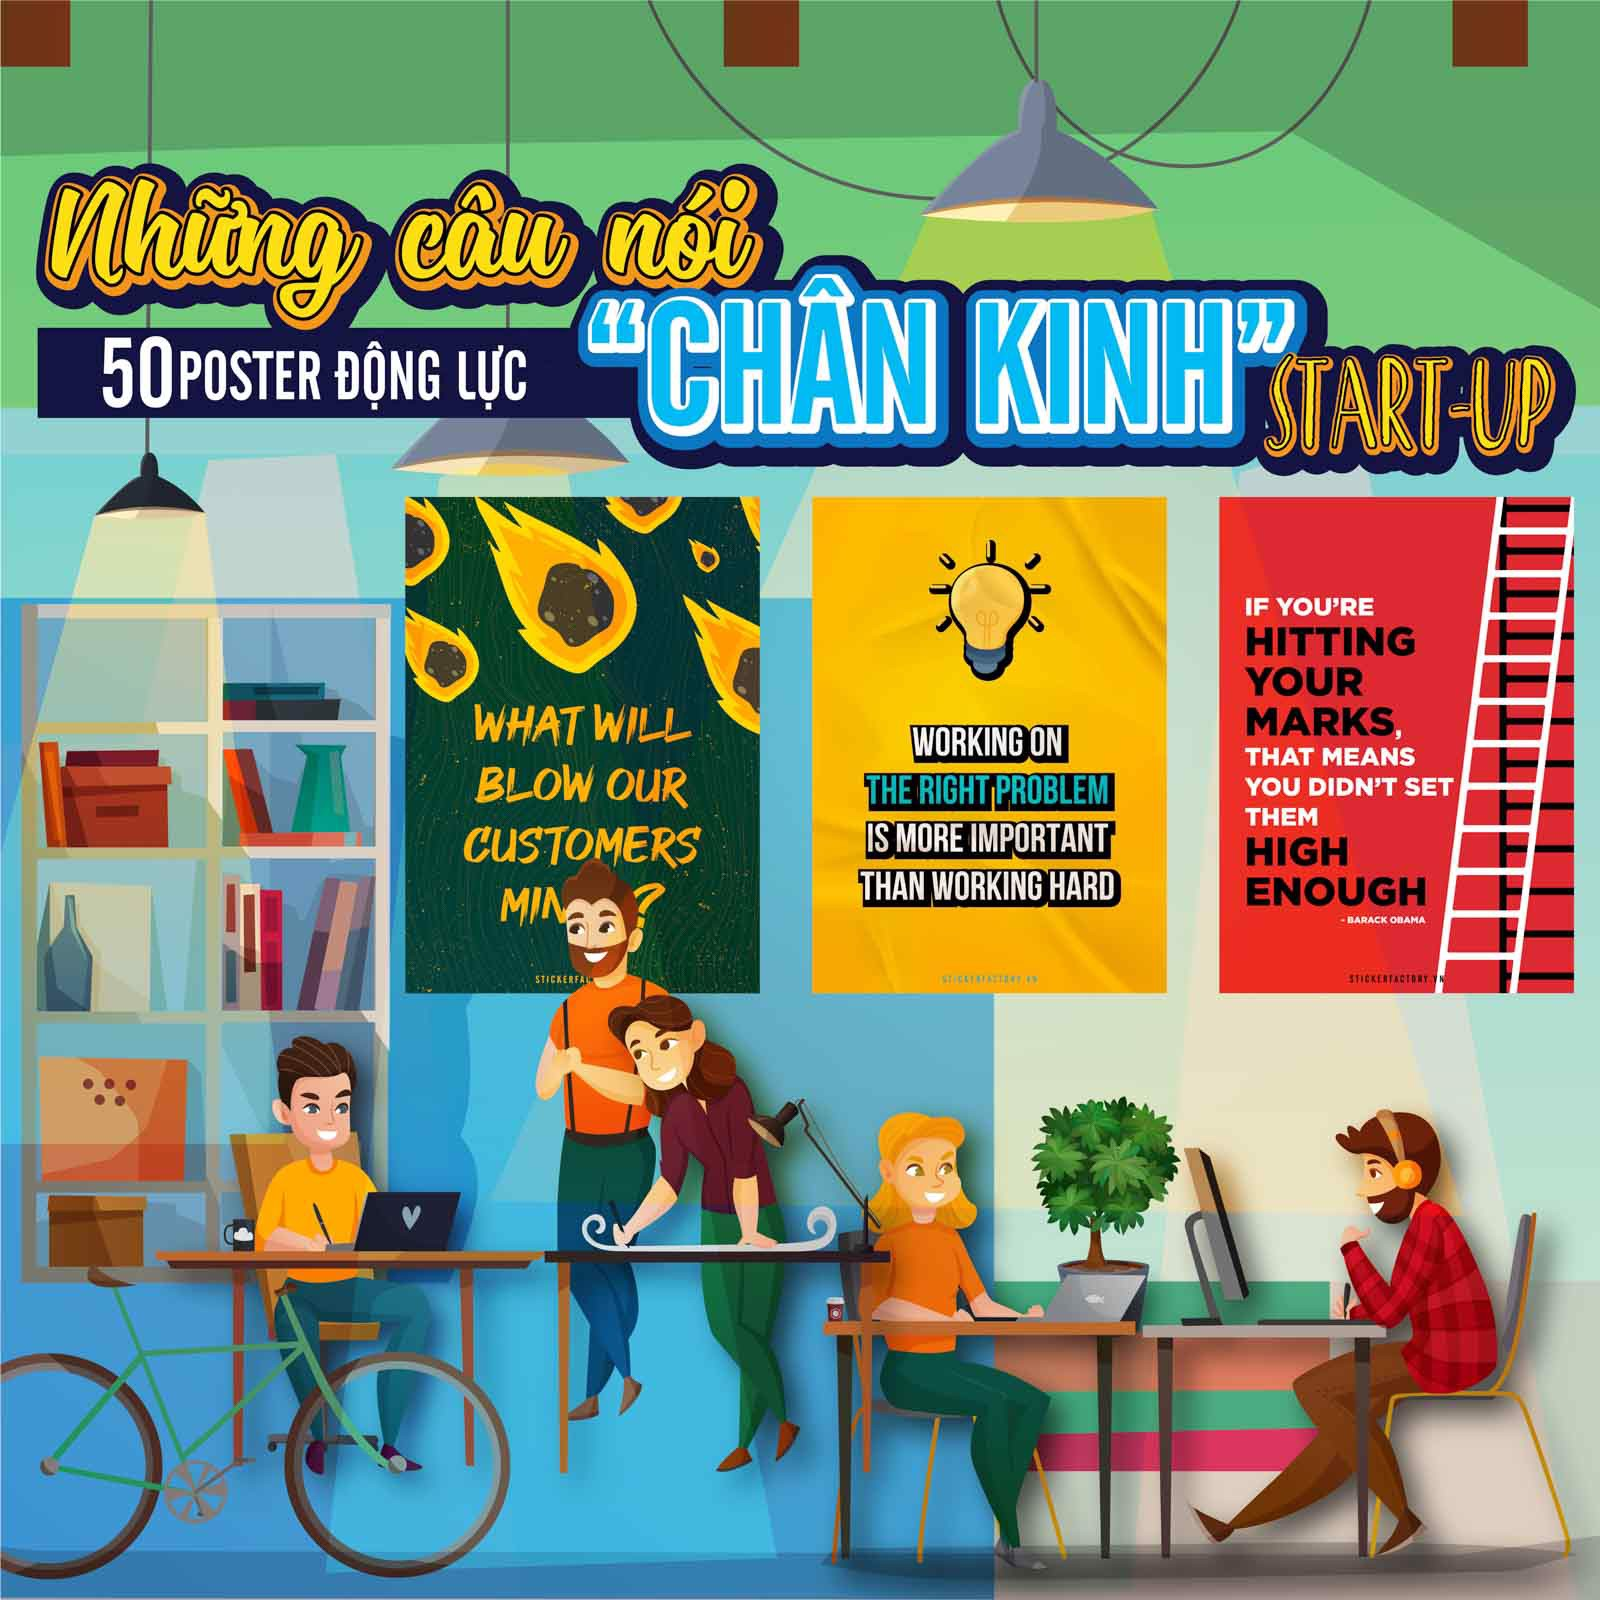 If you play it safe no one will ever know who you are - Poster động lực Chân Kinh Startup